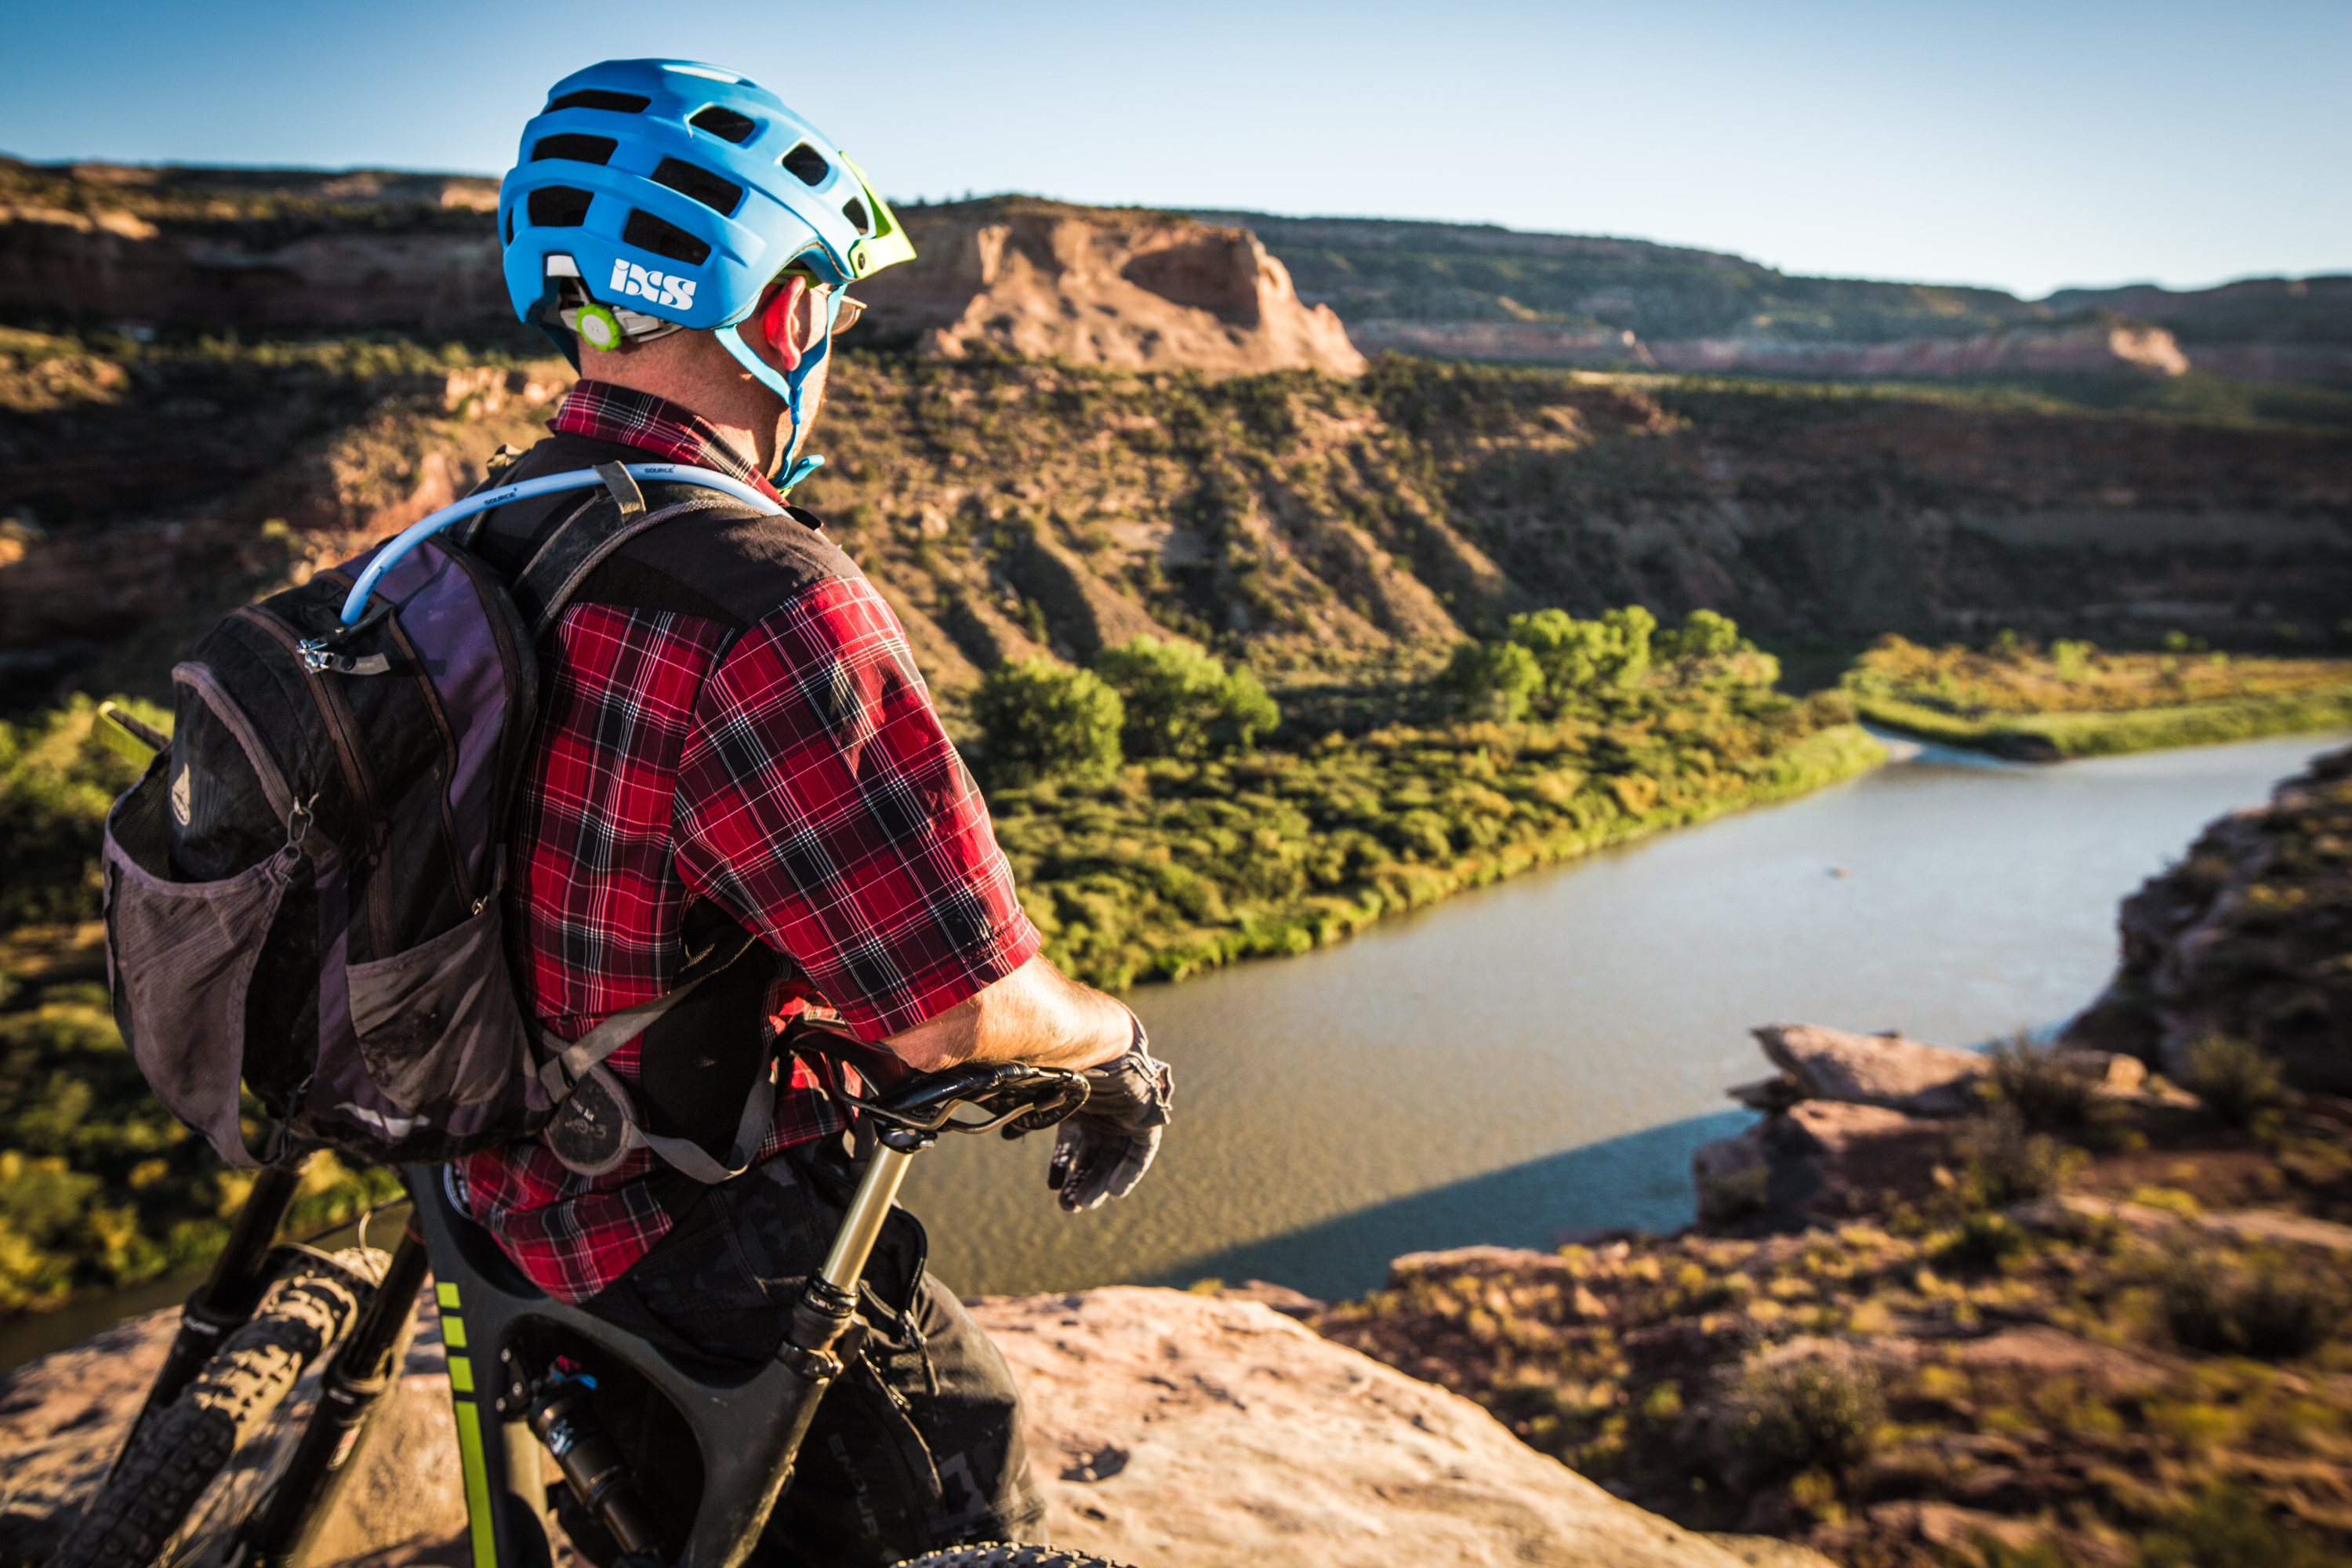 Fruita Colorado is a mountain biker's mecca